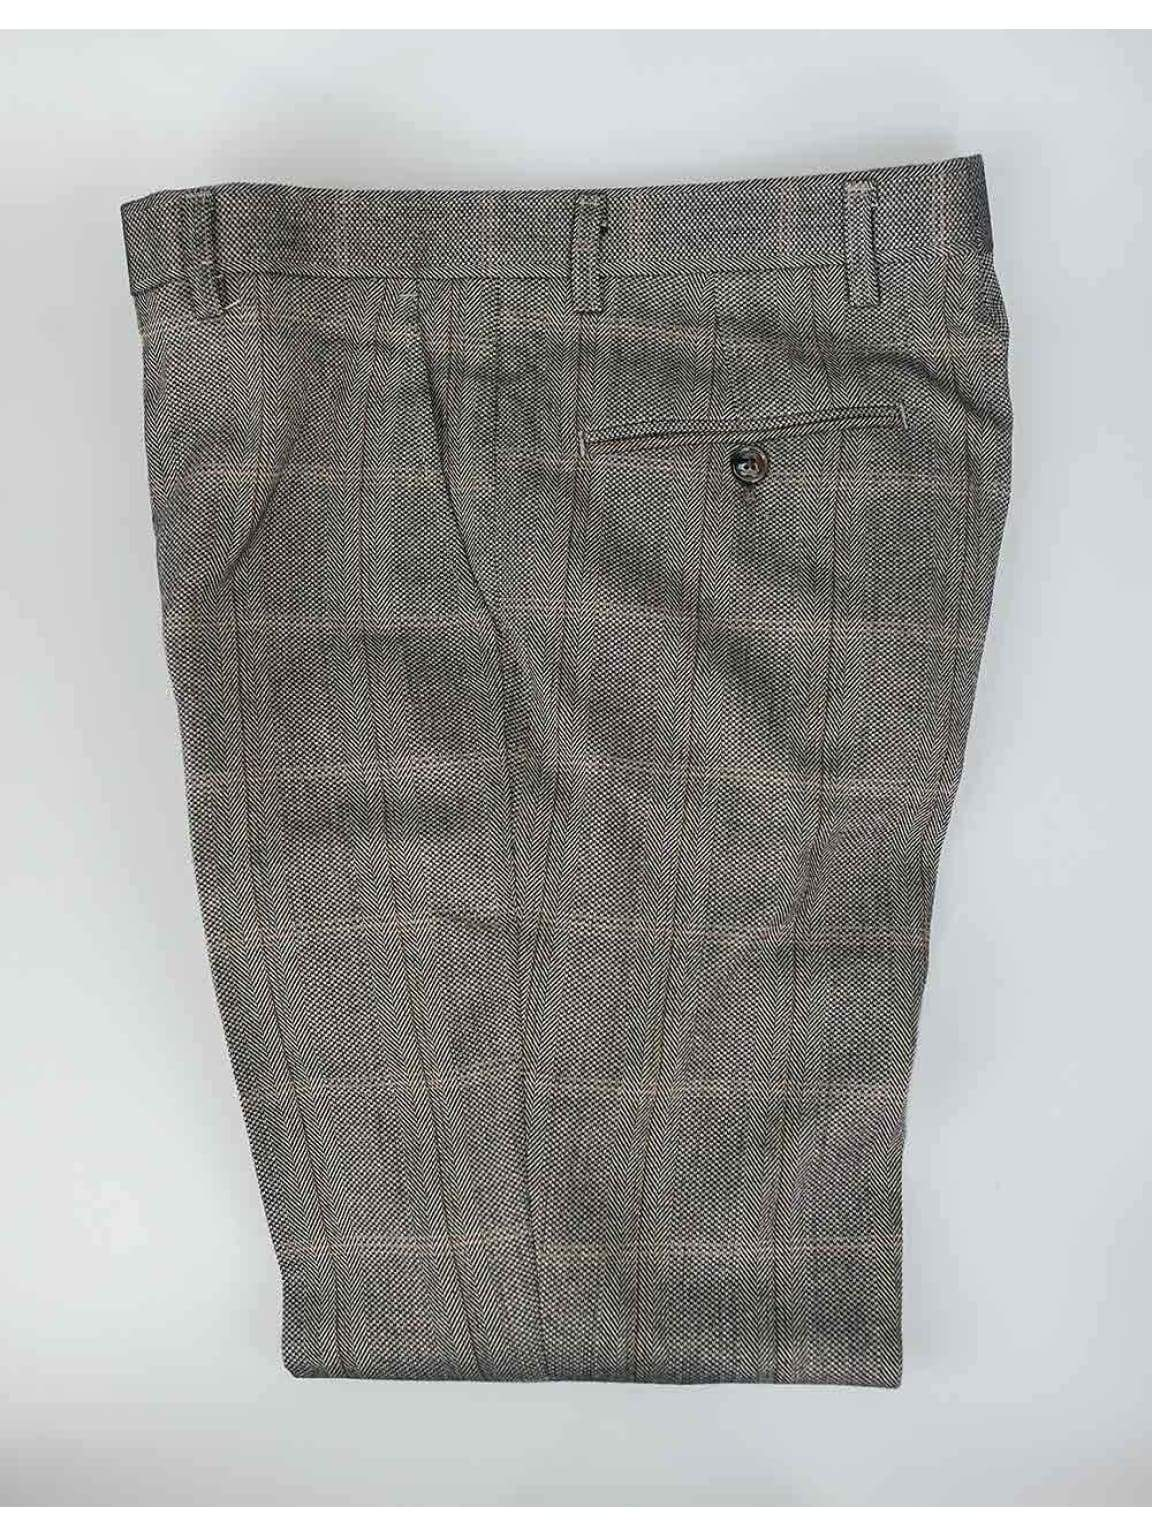 Cavani Connall Tweed Brown Mens Slim Fit Trousers - 30R - Suit & Tailoring